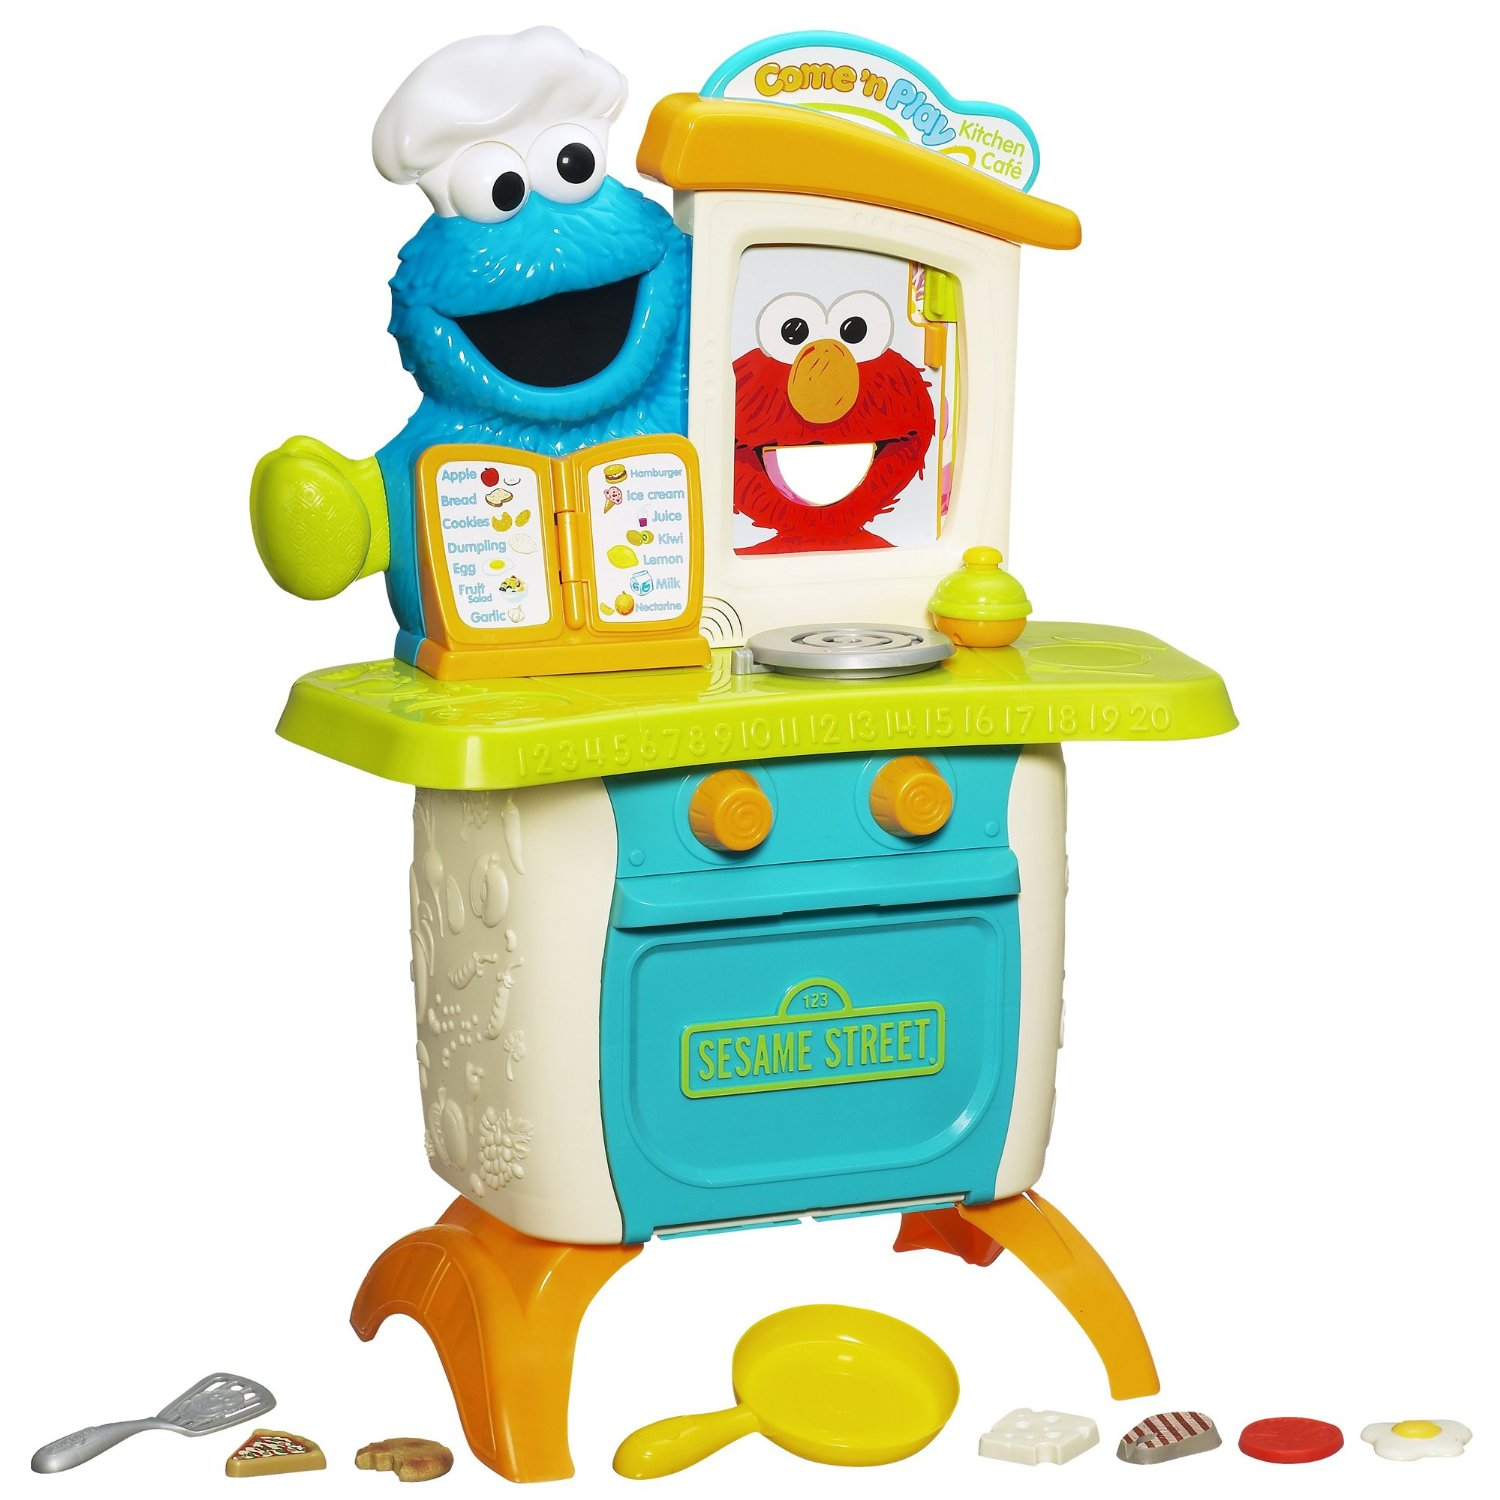 Playskool Sesame Street Come